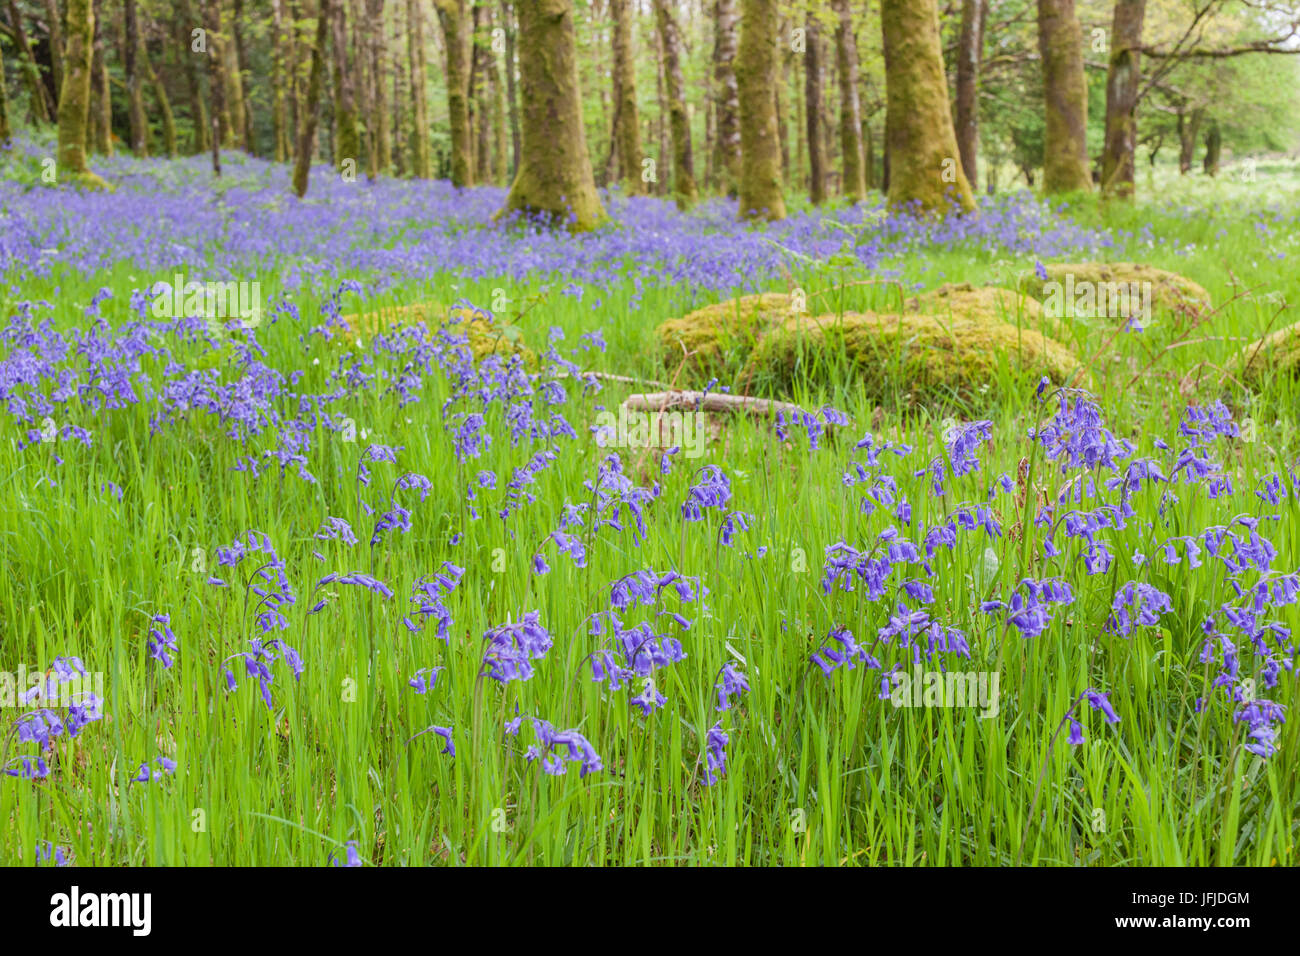 Bluebells Flowers In The Woods Ireland Europe Stock Photo